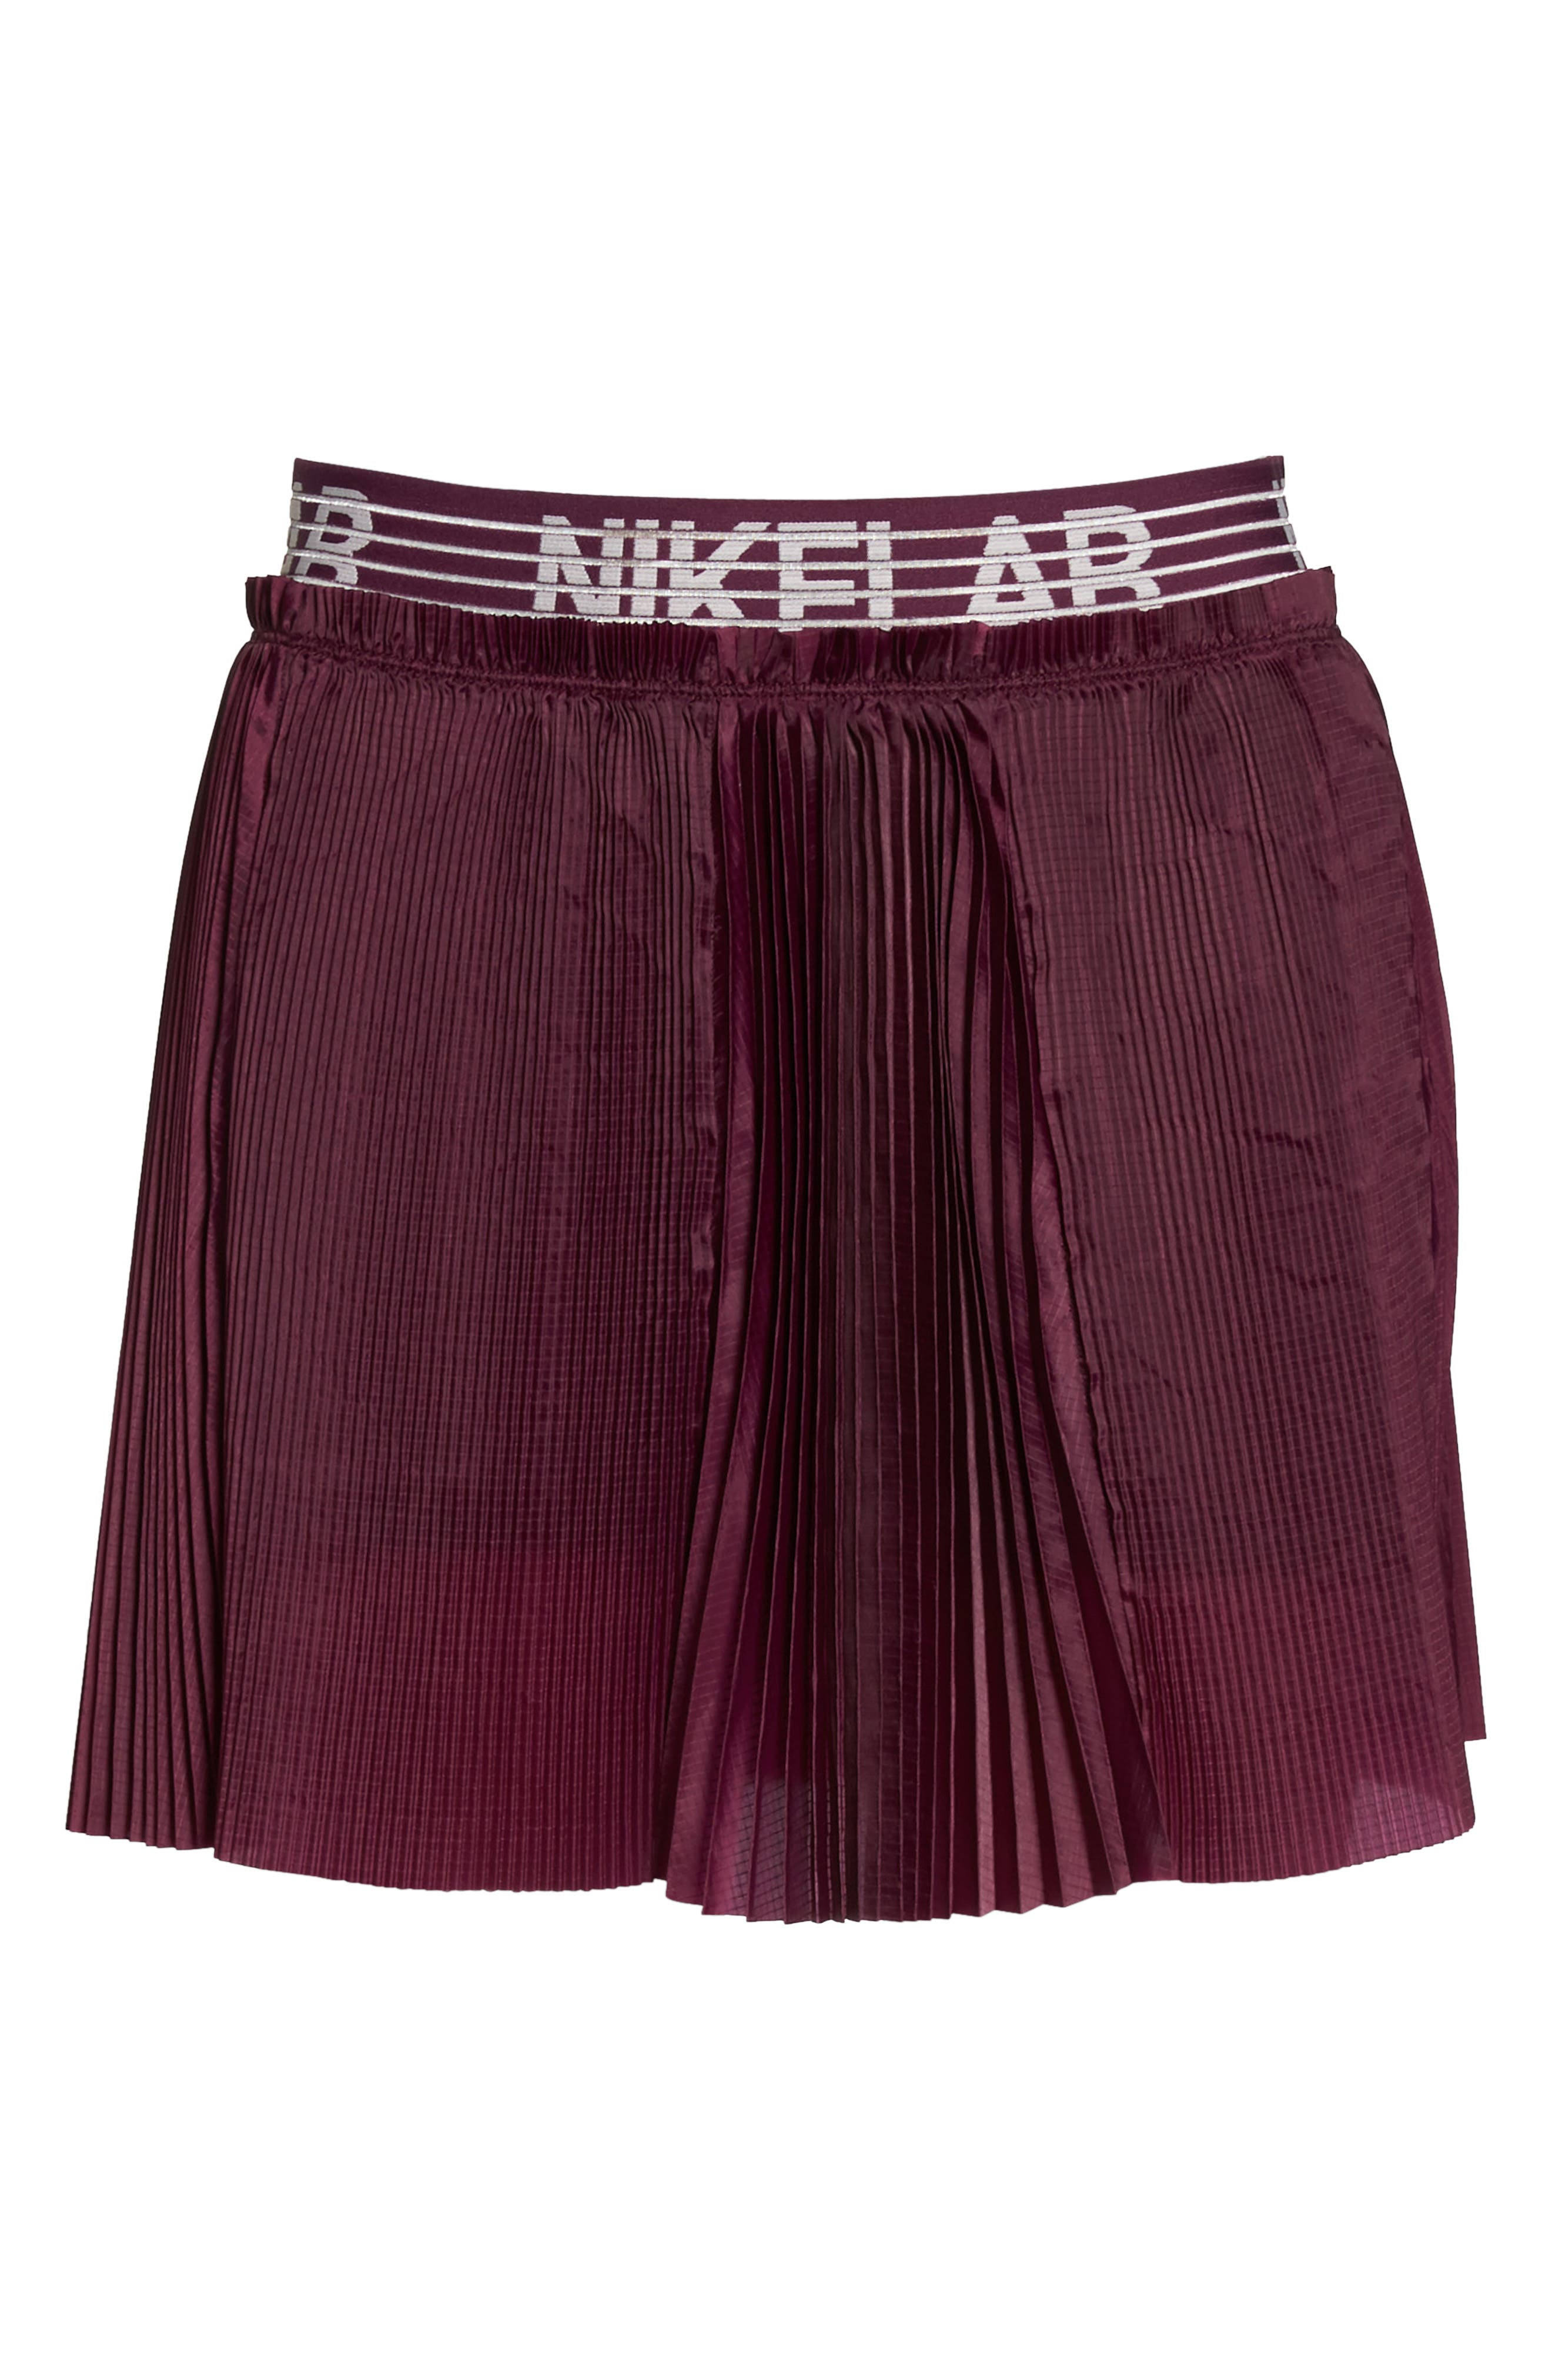 NikeLab Collection Dri-FIT Tennis Skirt,                             Alternate thumbnail 7, color,                             930